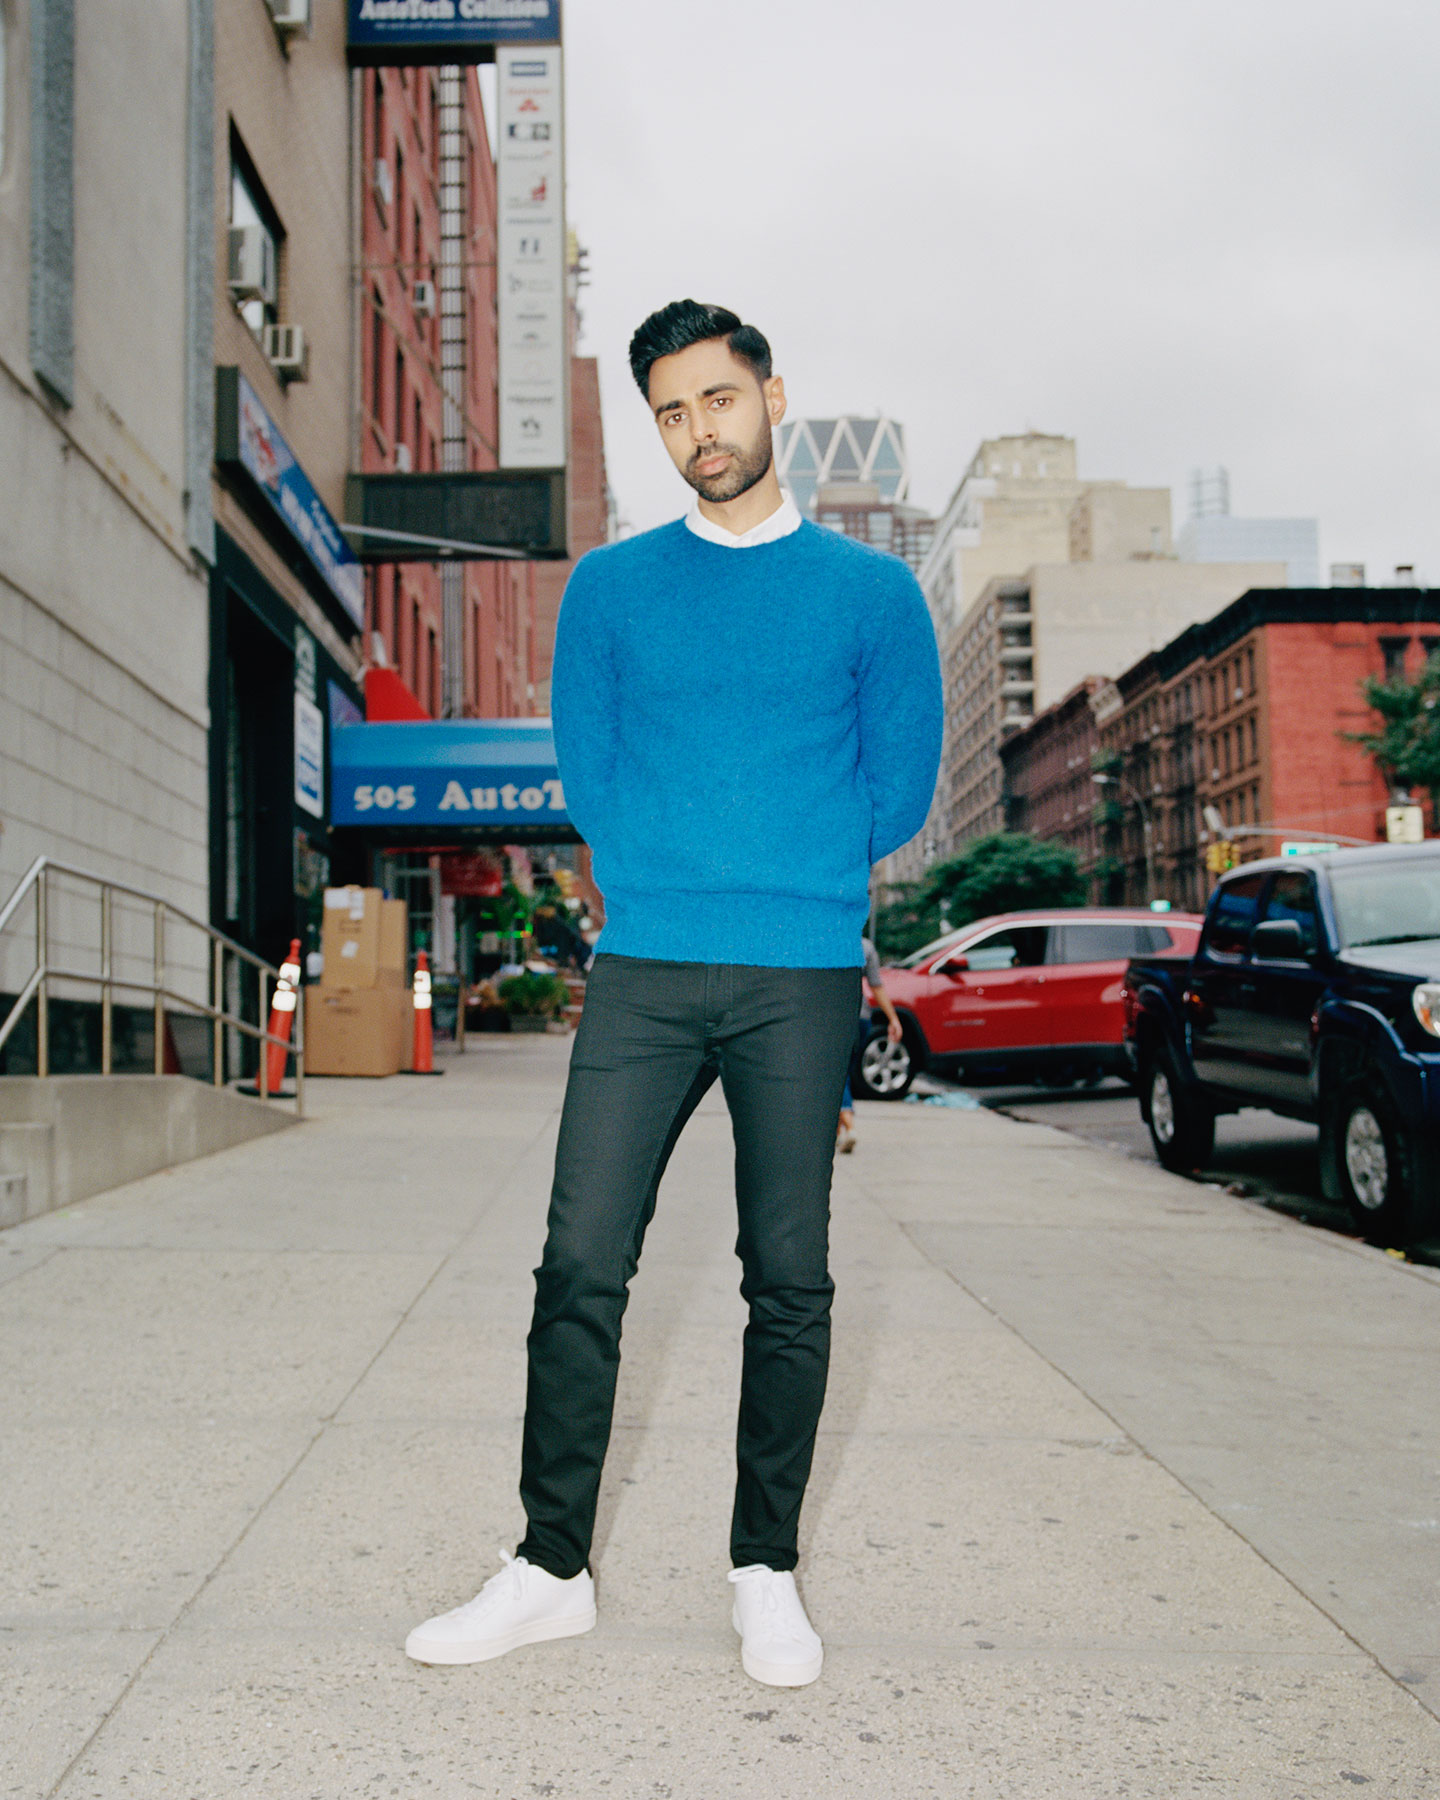 Hasan Minhaj comedian, writer, producer, political commentator, actor, and television host